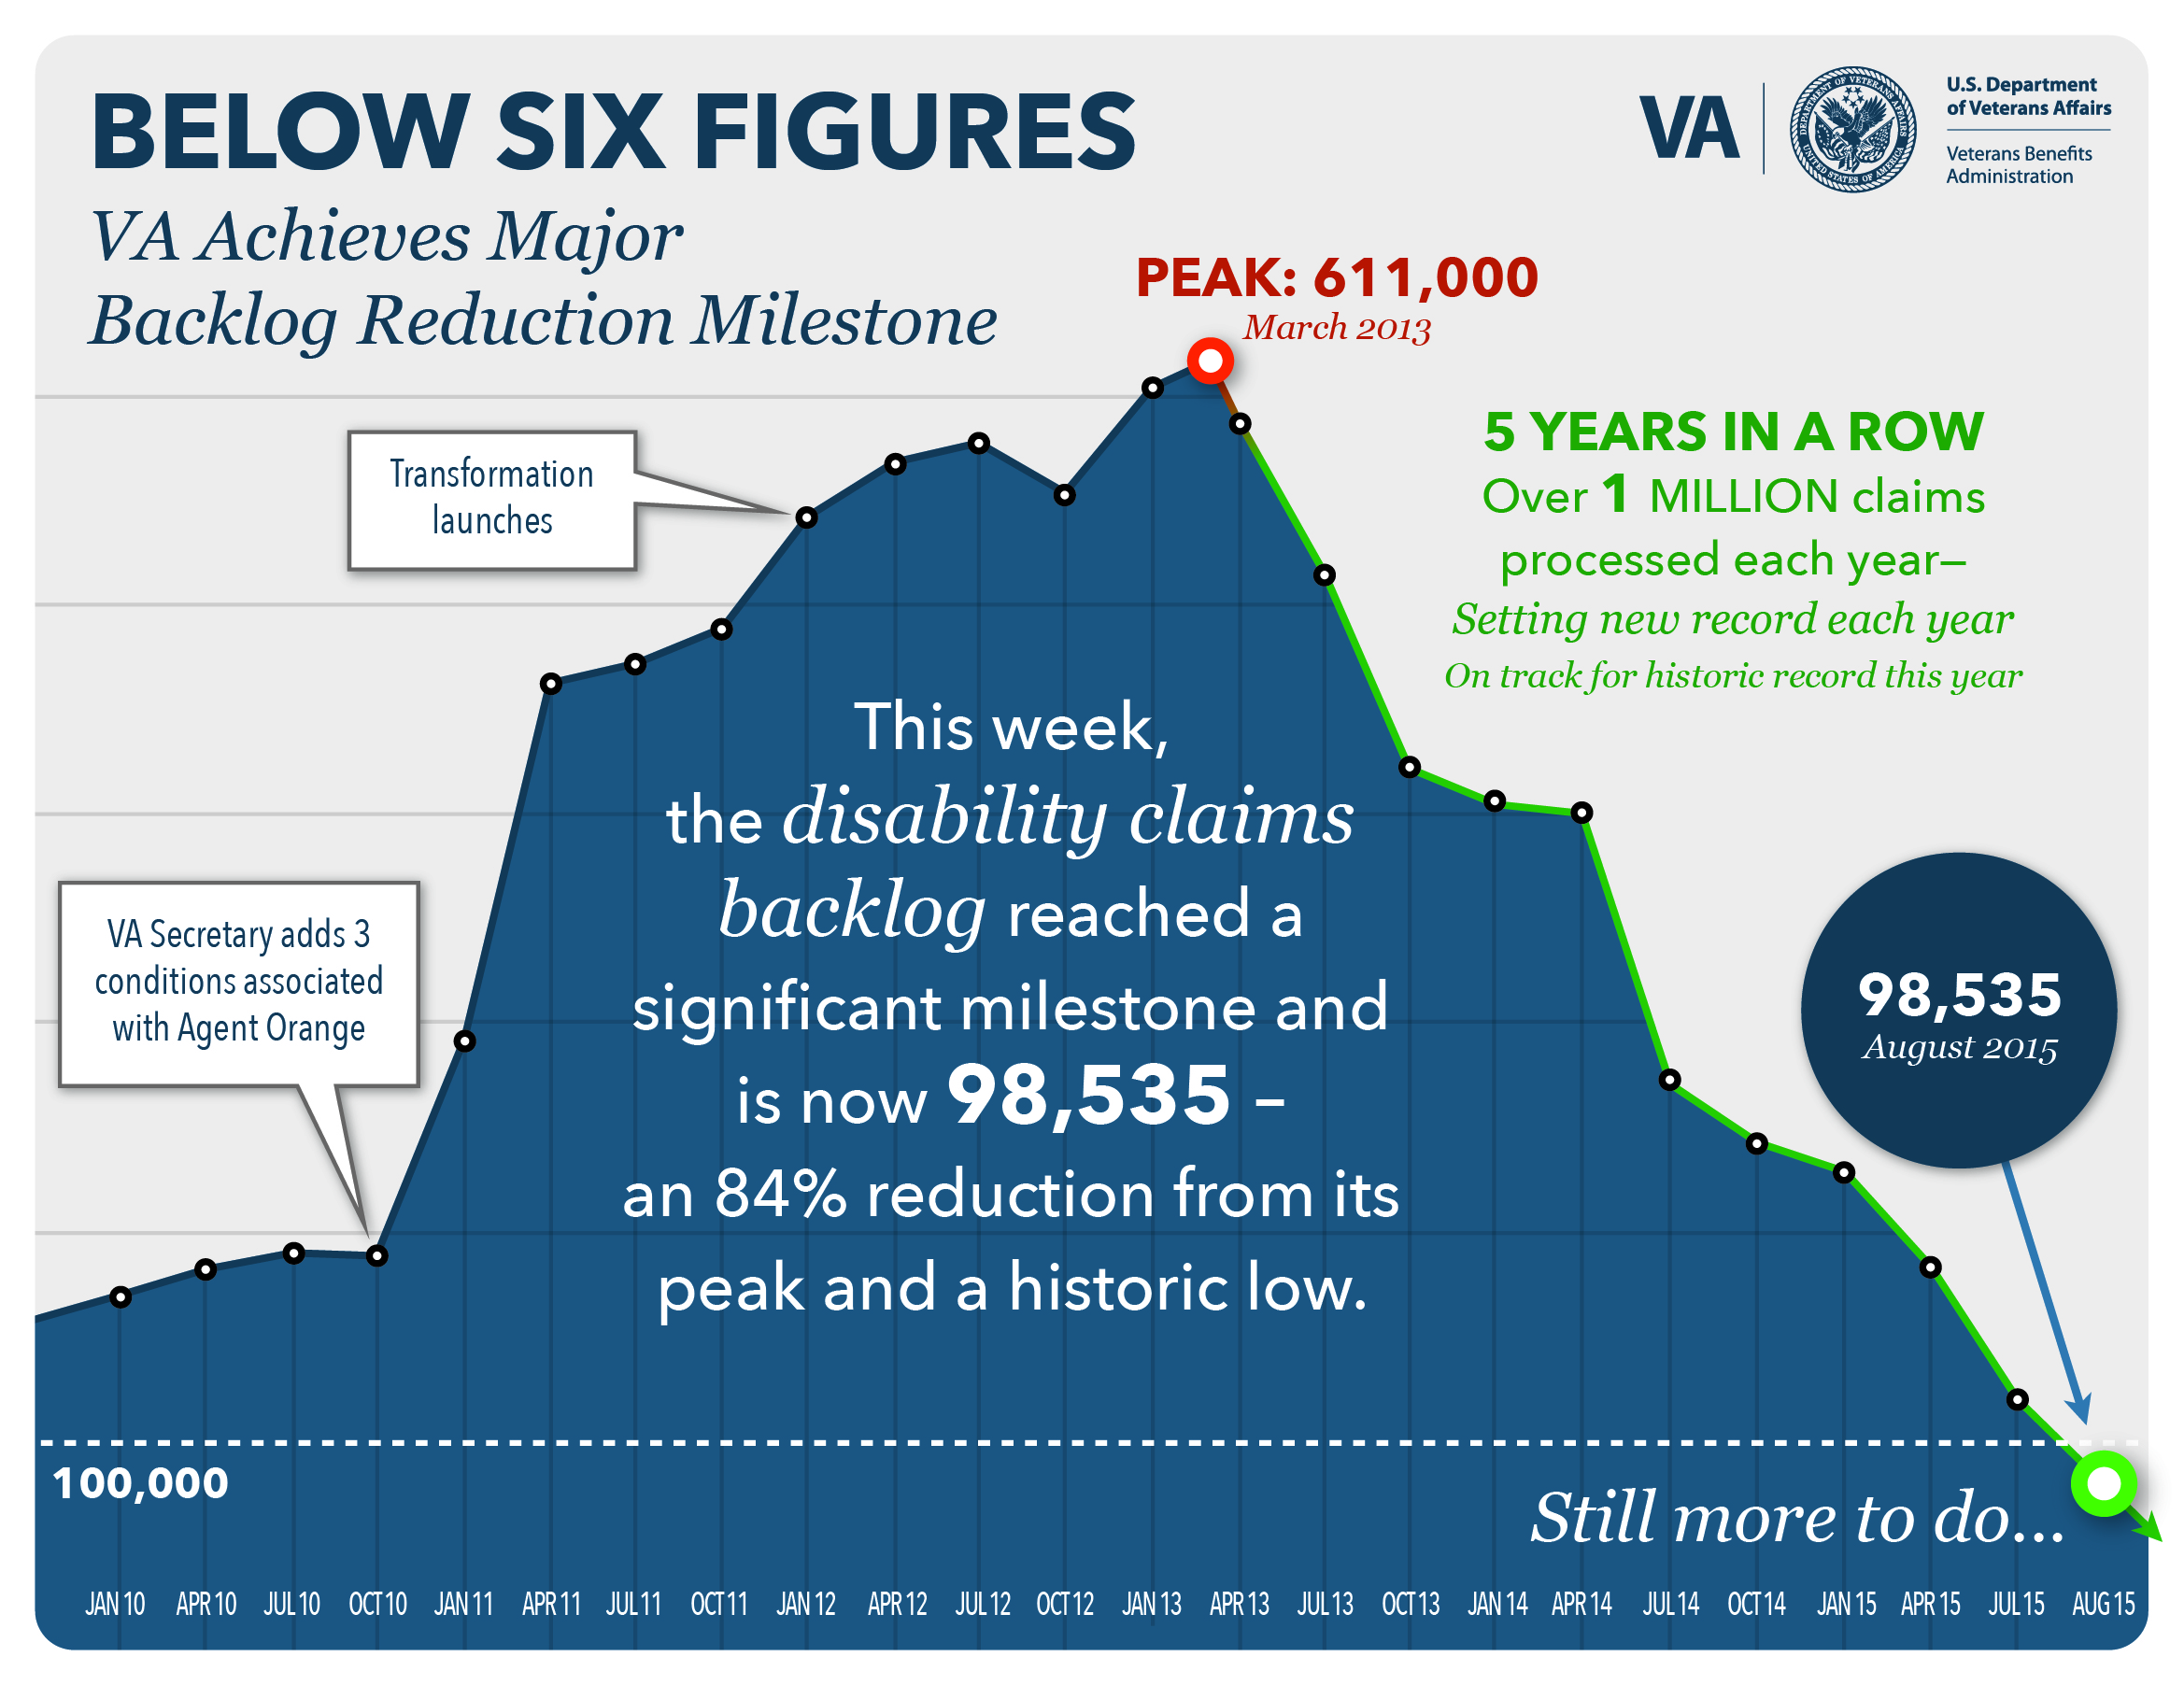 Below Six Figures. VA Achives Major Backlog Reduction Milestone. This week, the disability claims backlog reached a significant milestone and is now 98,535 - an 84% reduction from its peak and a historic low. PEAK: 611,000 March 2013. 5 YEARS IN A ROW, Over 1 millions claims processed each year - setting new record each year. On track for historic record this year. 98,535 August 2015. Still more to do...